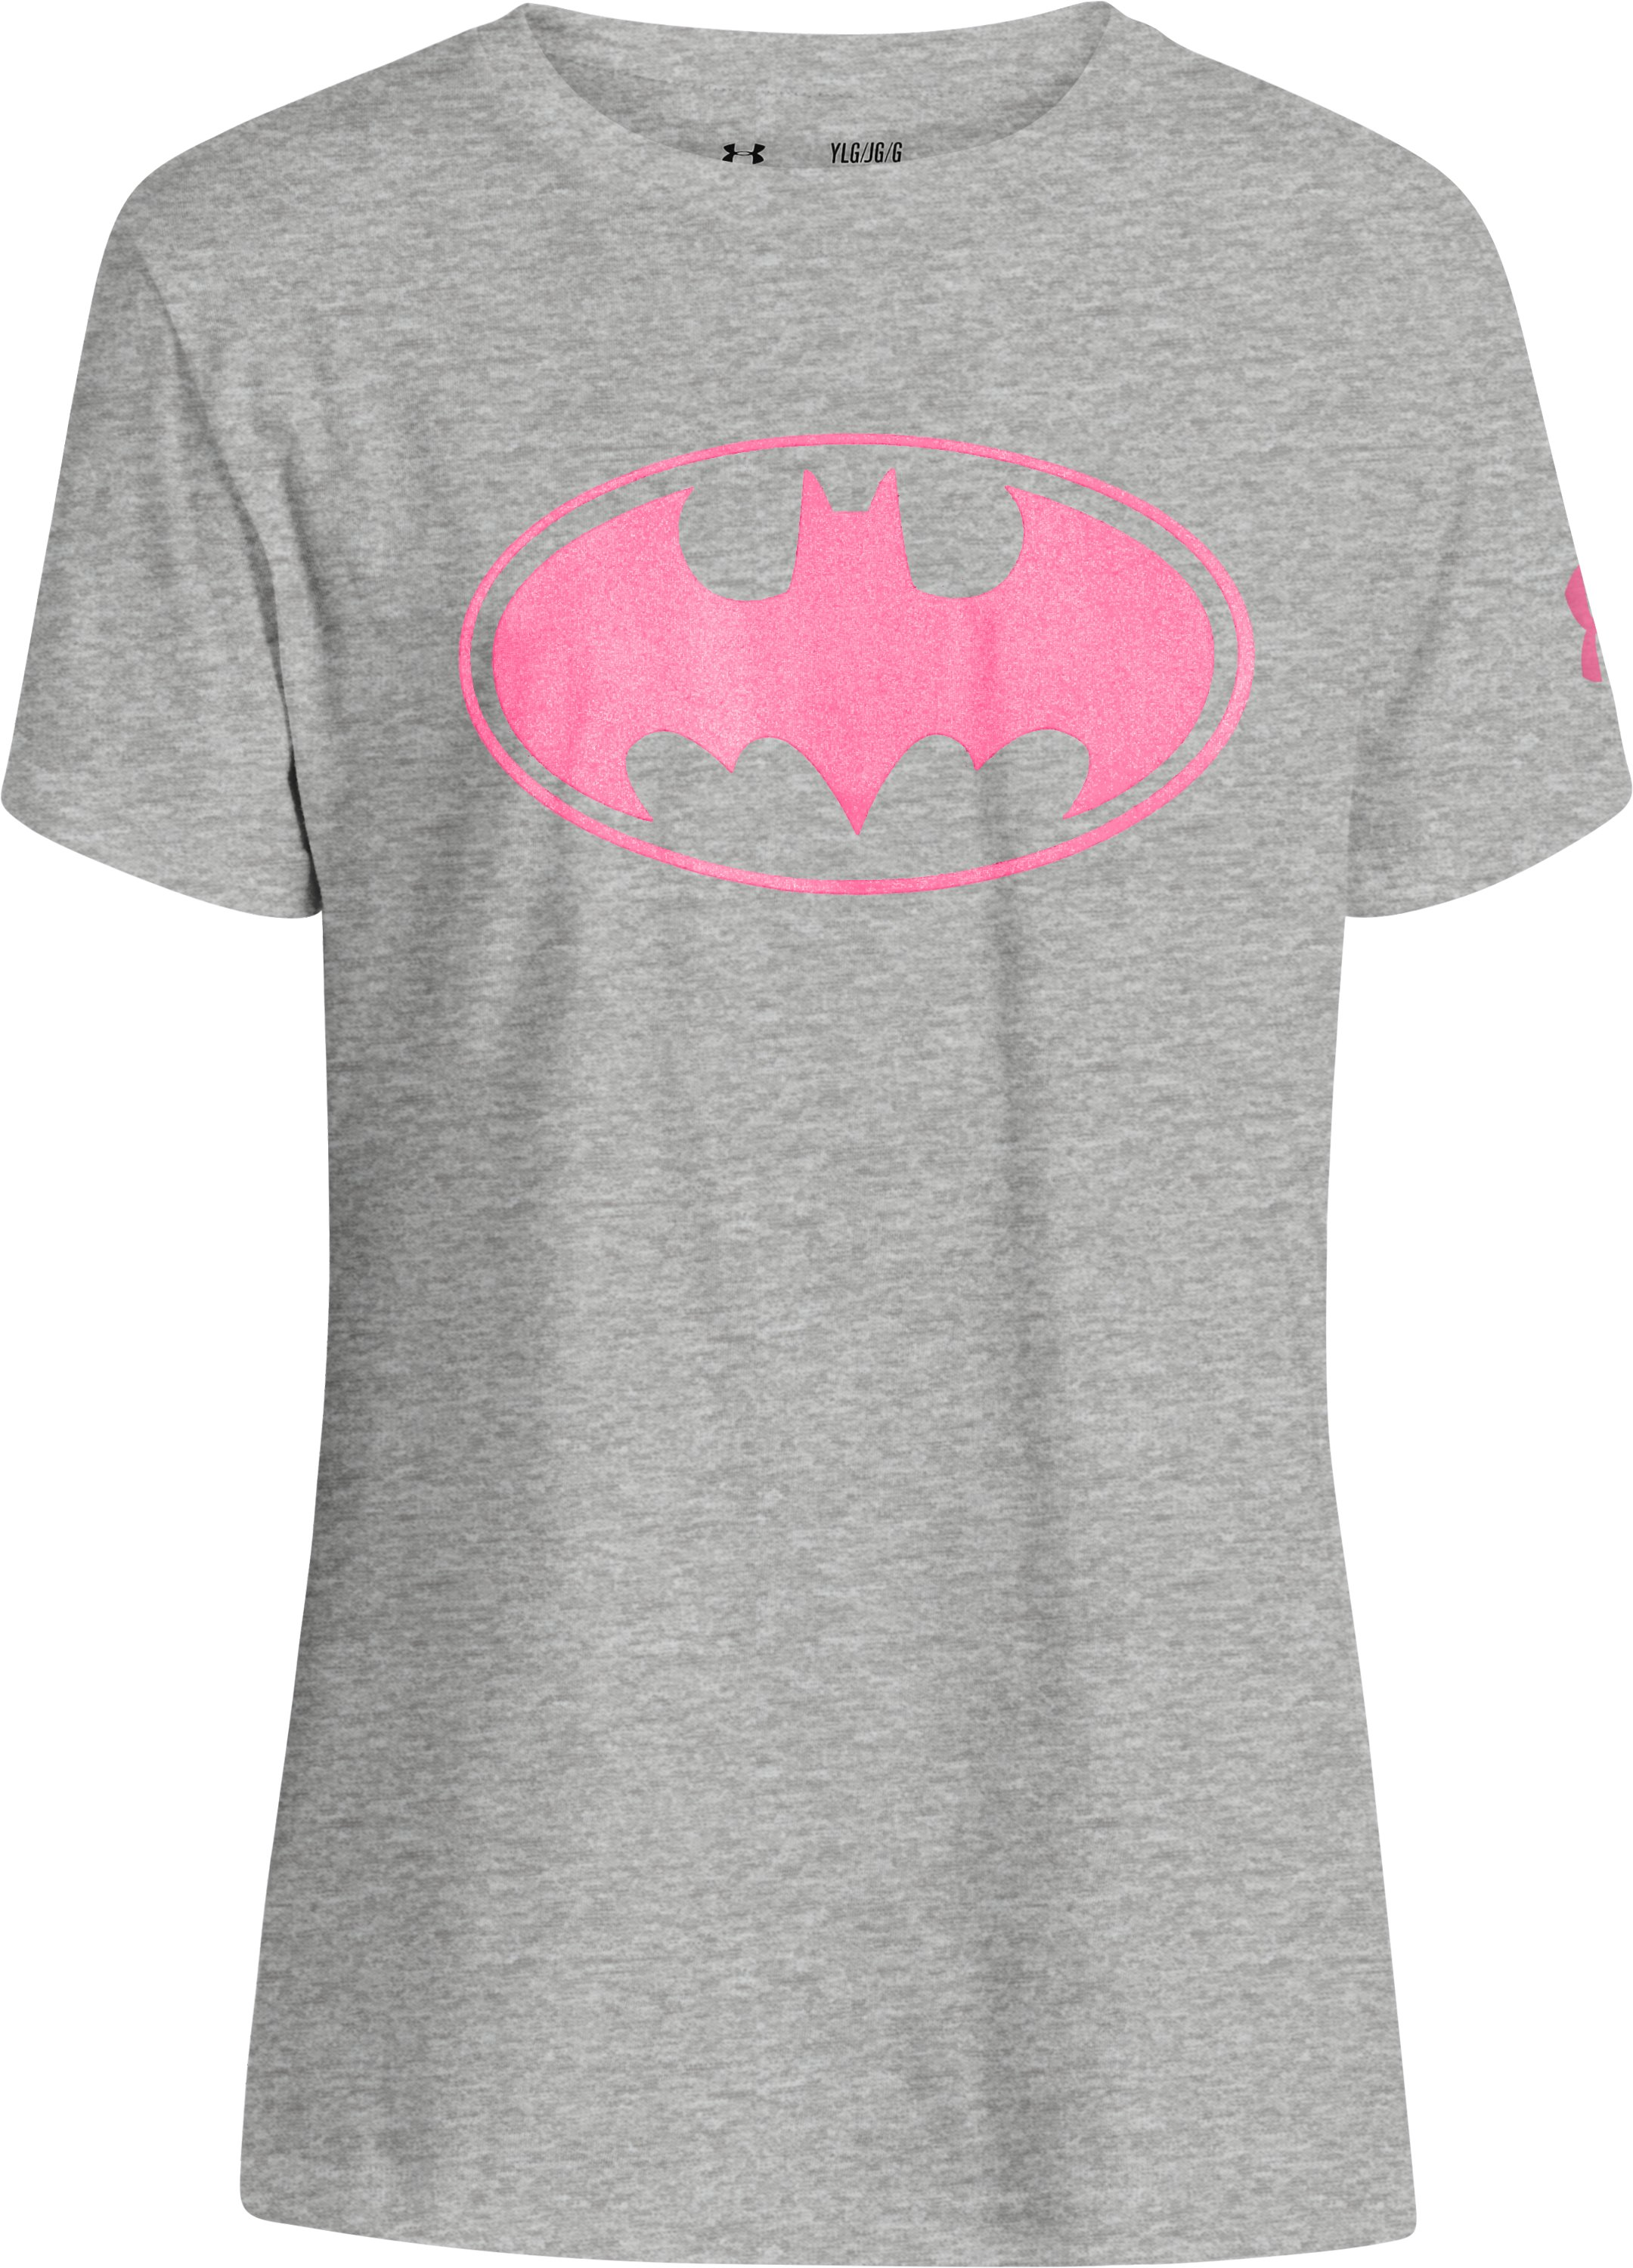 Girls' Under Armour® Alter Ego Batgirl Sparkle T-Shirt, True Gray Heather